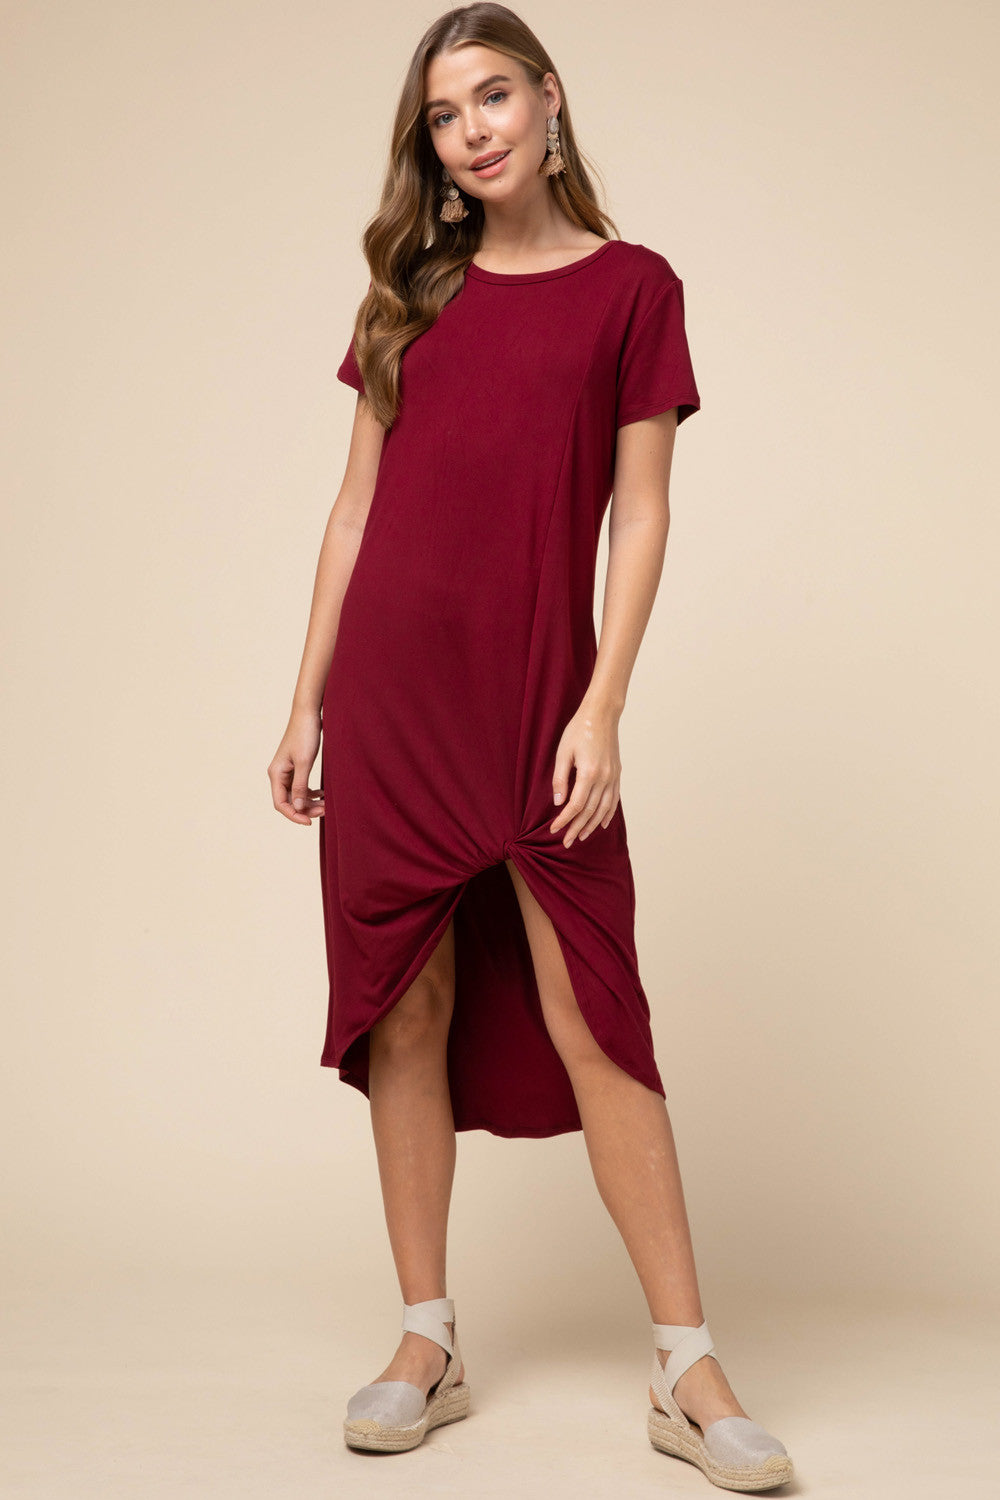 LAST CALL SIZE L | Twister Hem Midi Dress in Burgundy